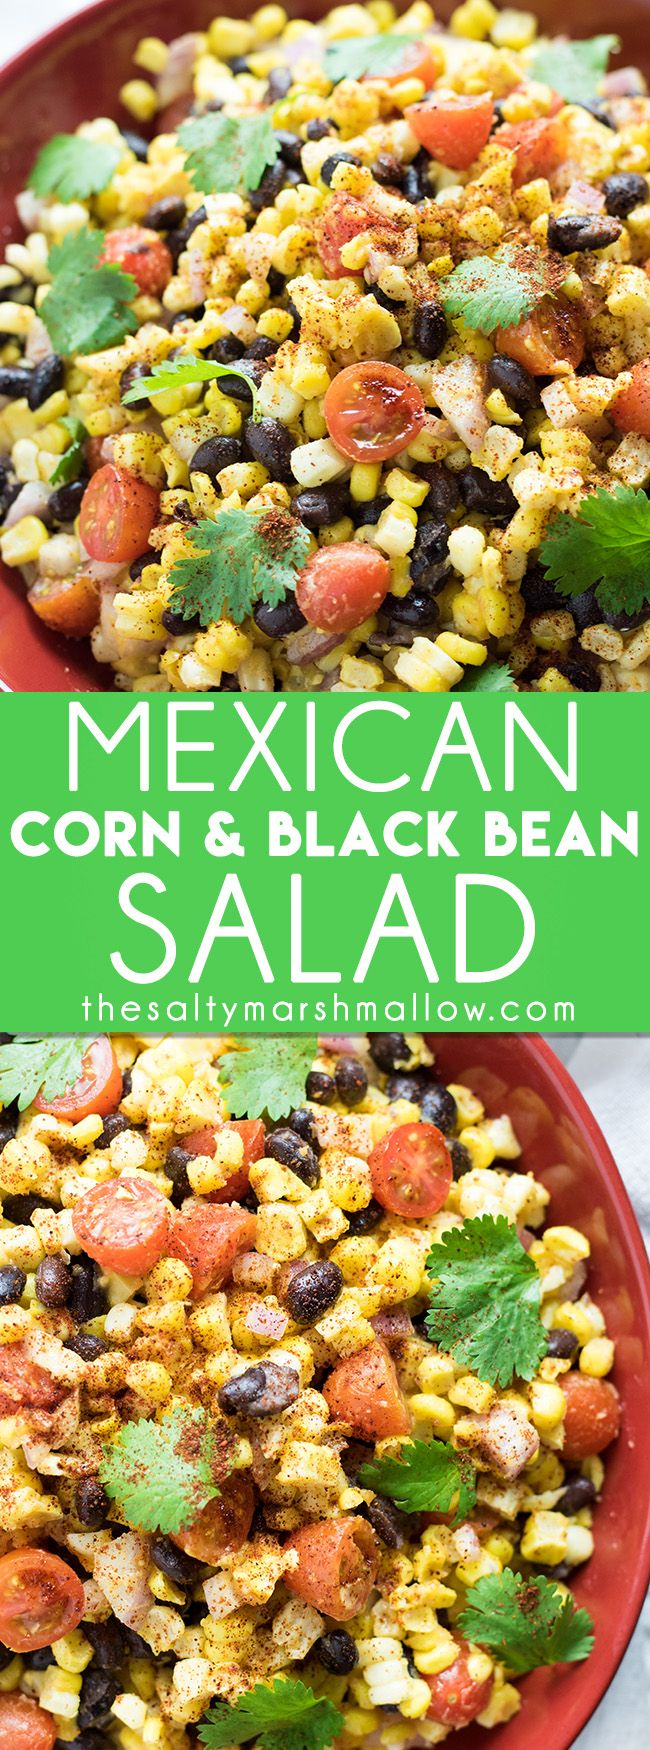 Mexican Corn & Black Bean Salad: An easy Mexican corn salad recipe that's perfect for summer. A nice refreshing salad that's made with fresh corn and served cold. Great as a healthy side dish with grilled meat!